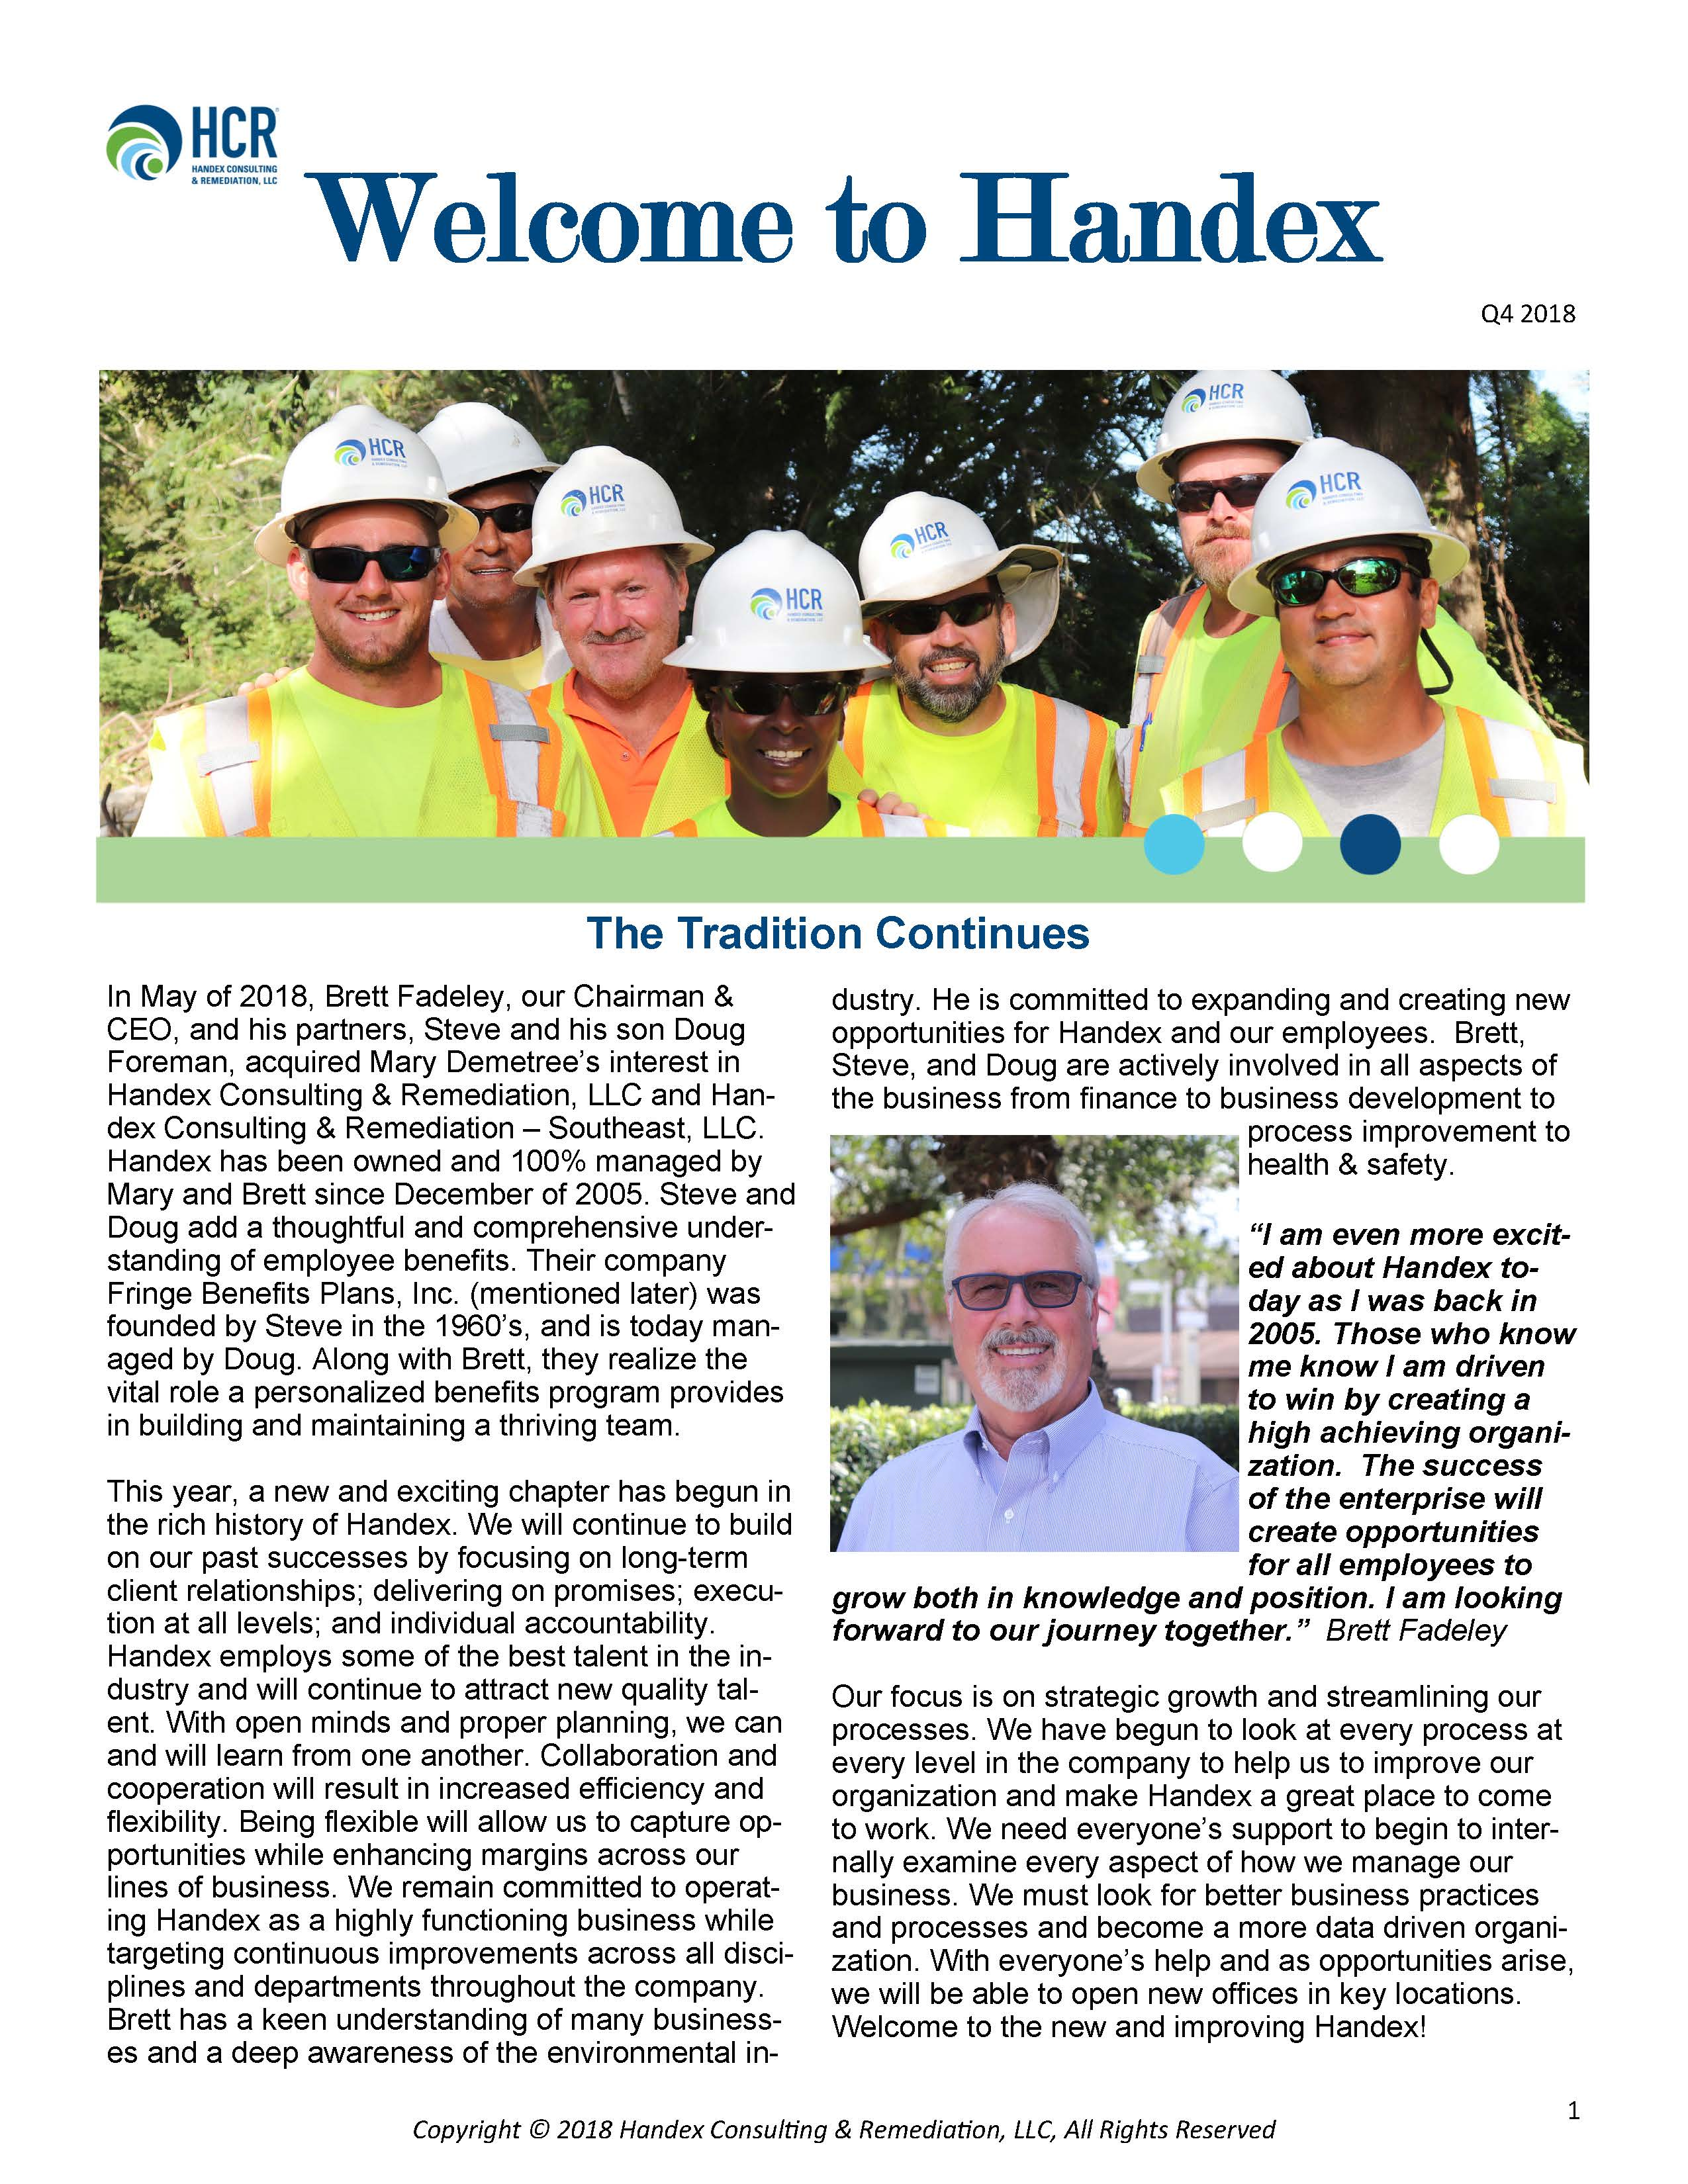 Welcome to Handex_Q4 2018 Newsletter_Page_1